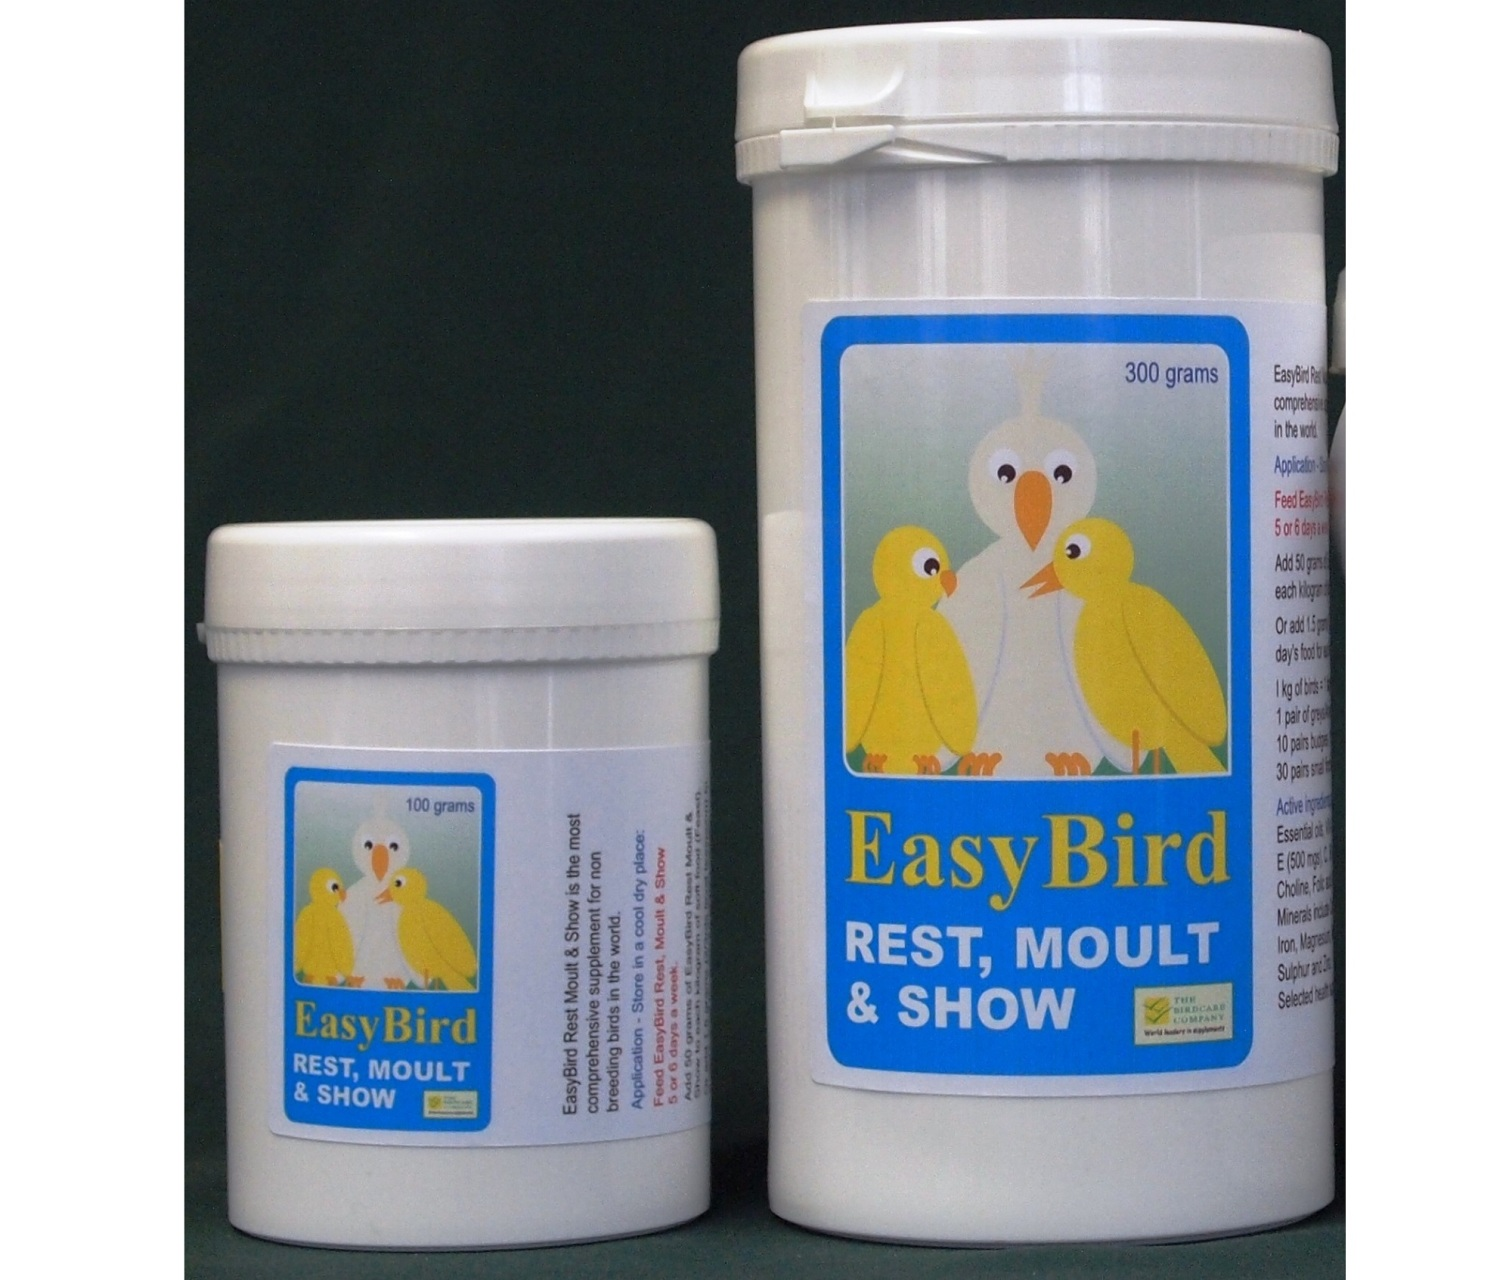 Egg food our aviary recipe step by step cute little birdies aviary supplements we use for moulting budgies forumfinder Choice Image